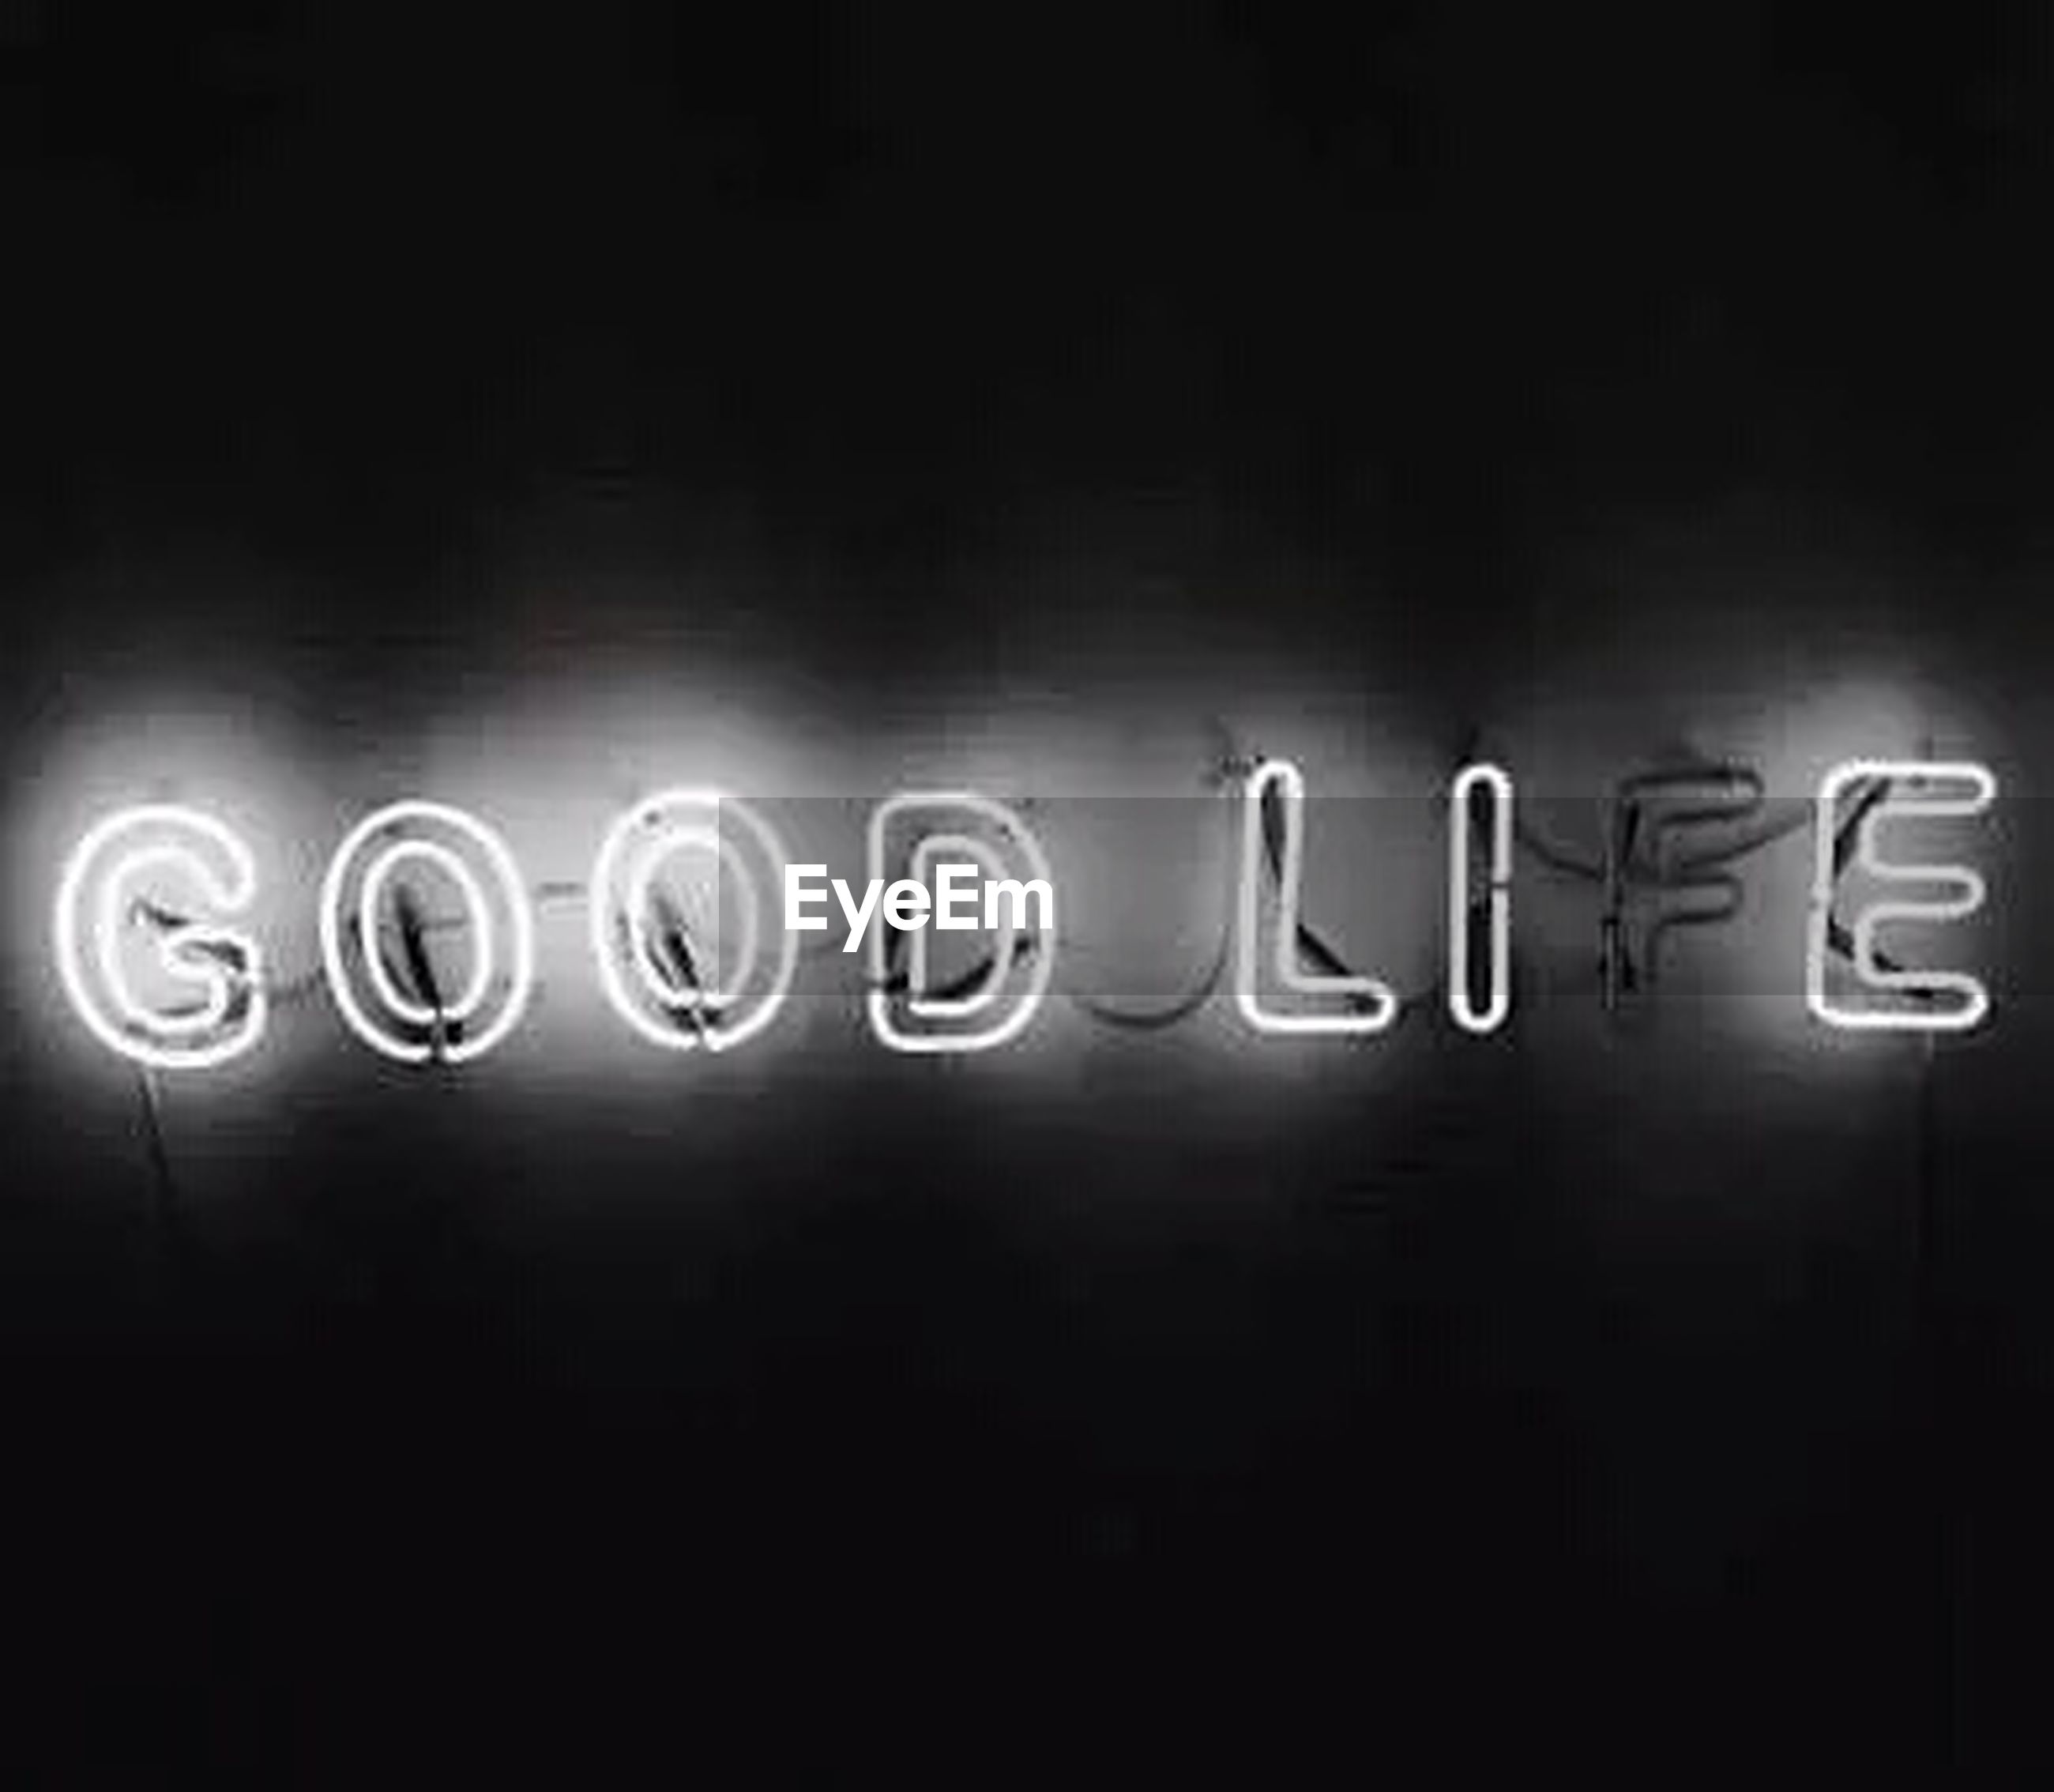 text, western script, communication, illuminated, night, capital letter, indoors, information, sign, copy space, wall - building feature, information sign, no people, dark, non-western script, guidance, light - natural phenomenon, close-up, neon, lighting equipment